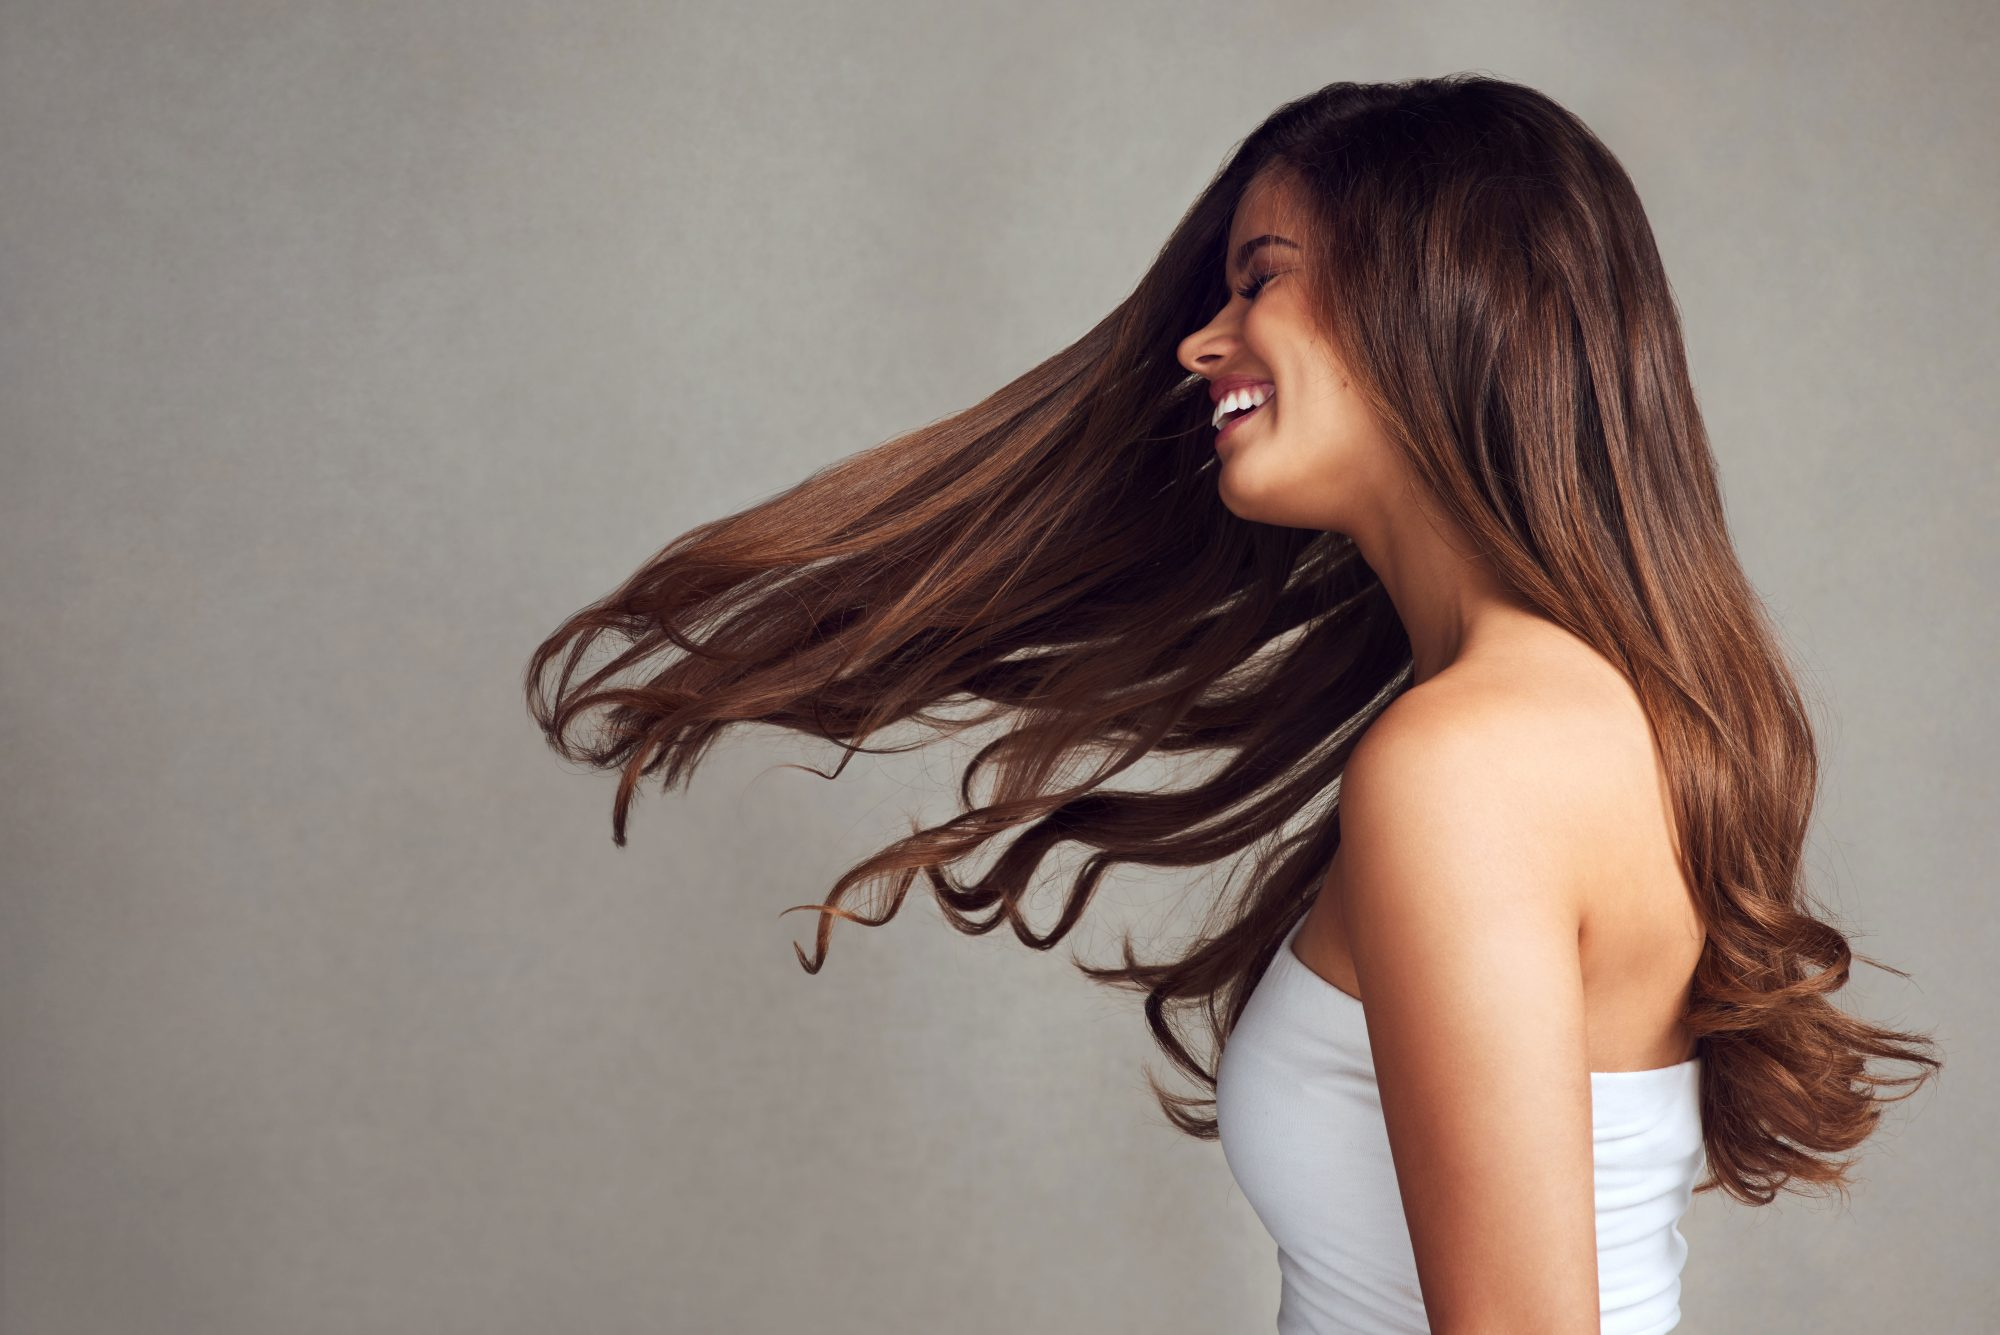 Woman with Long Brown Hair Loose Waves Smiling